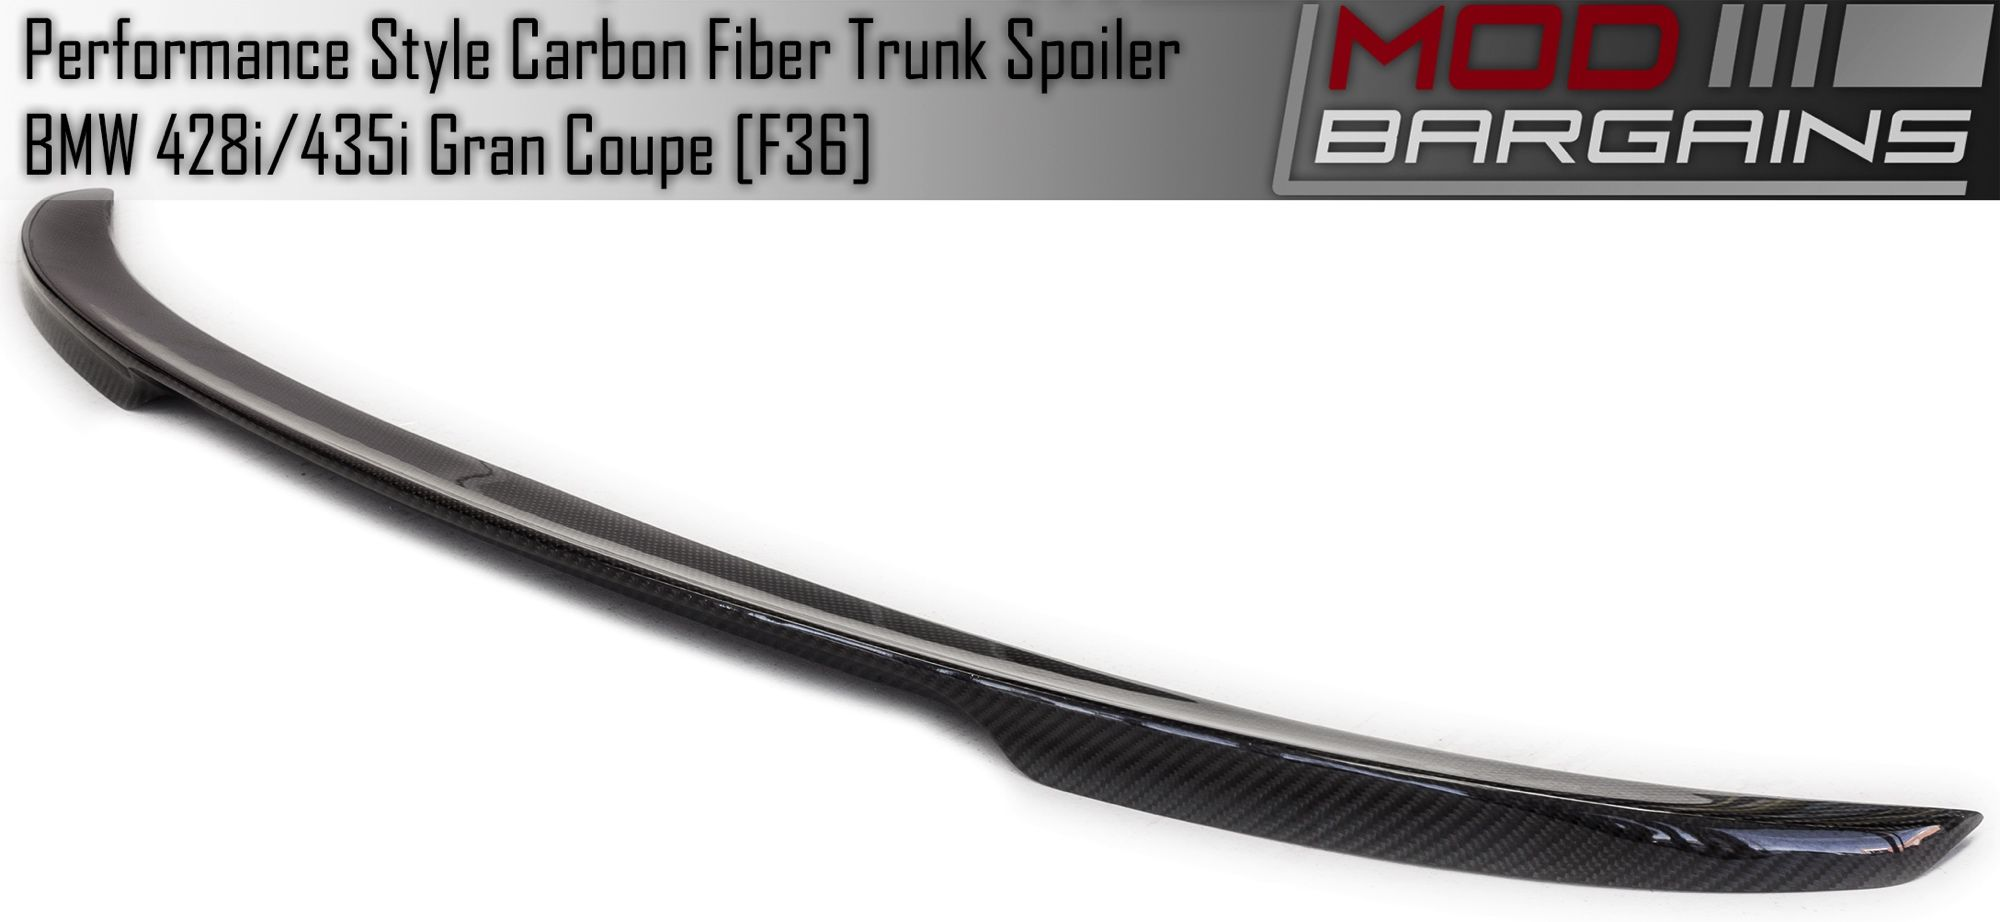 Carbon Fiber Performance Style Trunk Spoiler for BMW F36 BMFTS3601